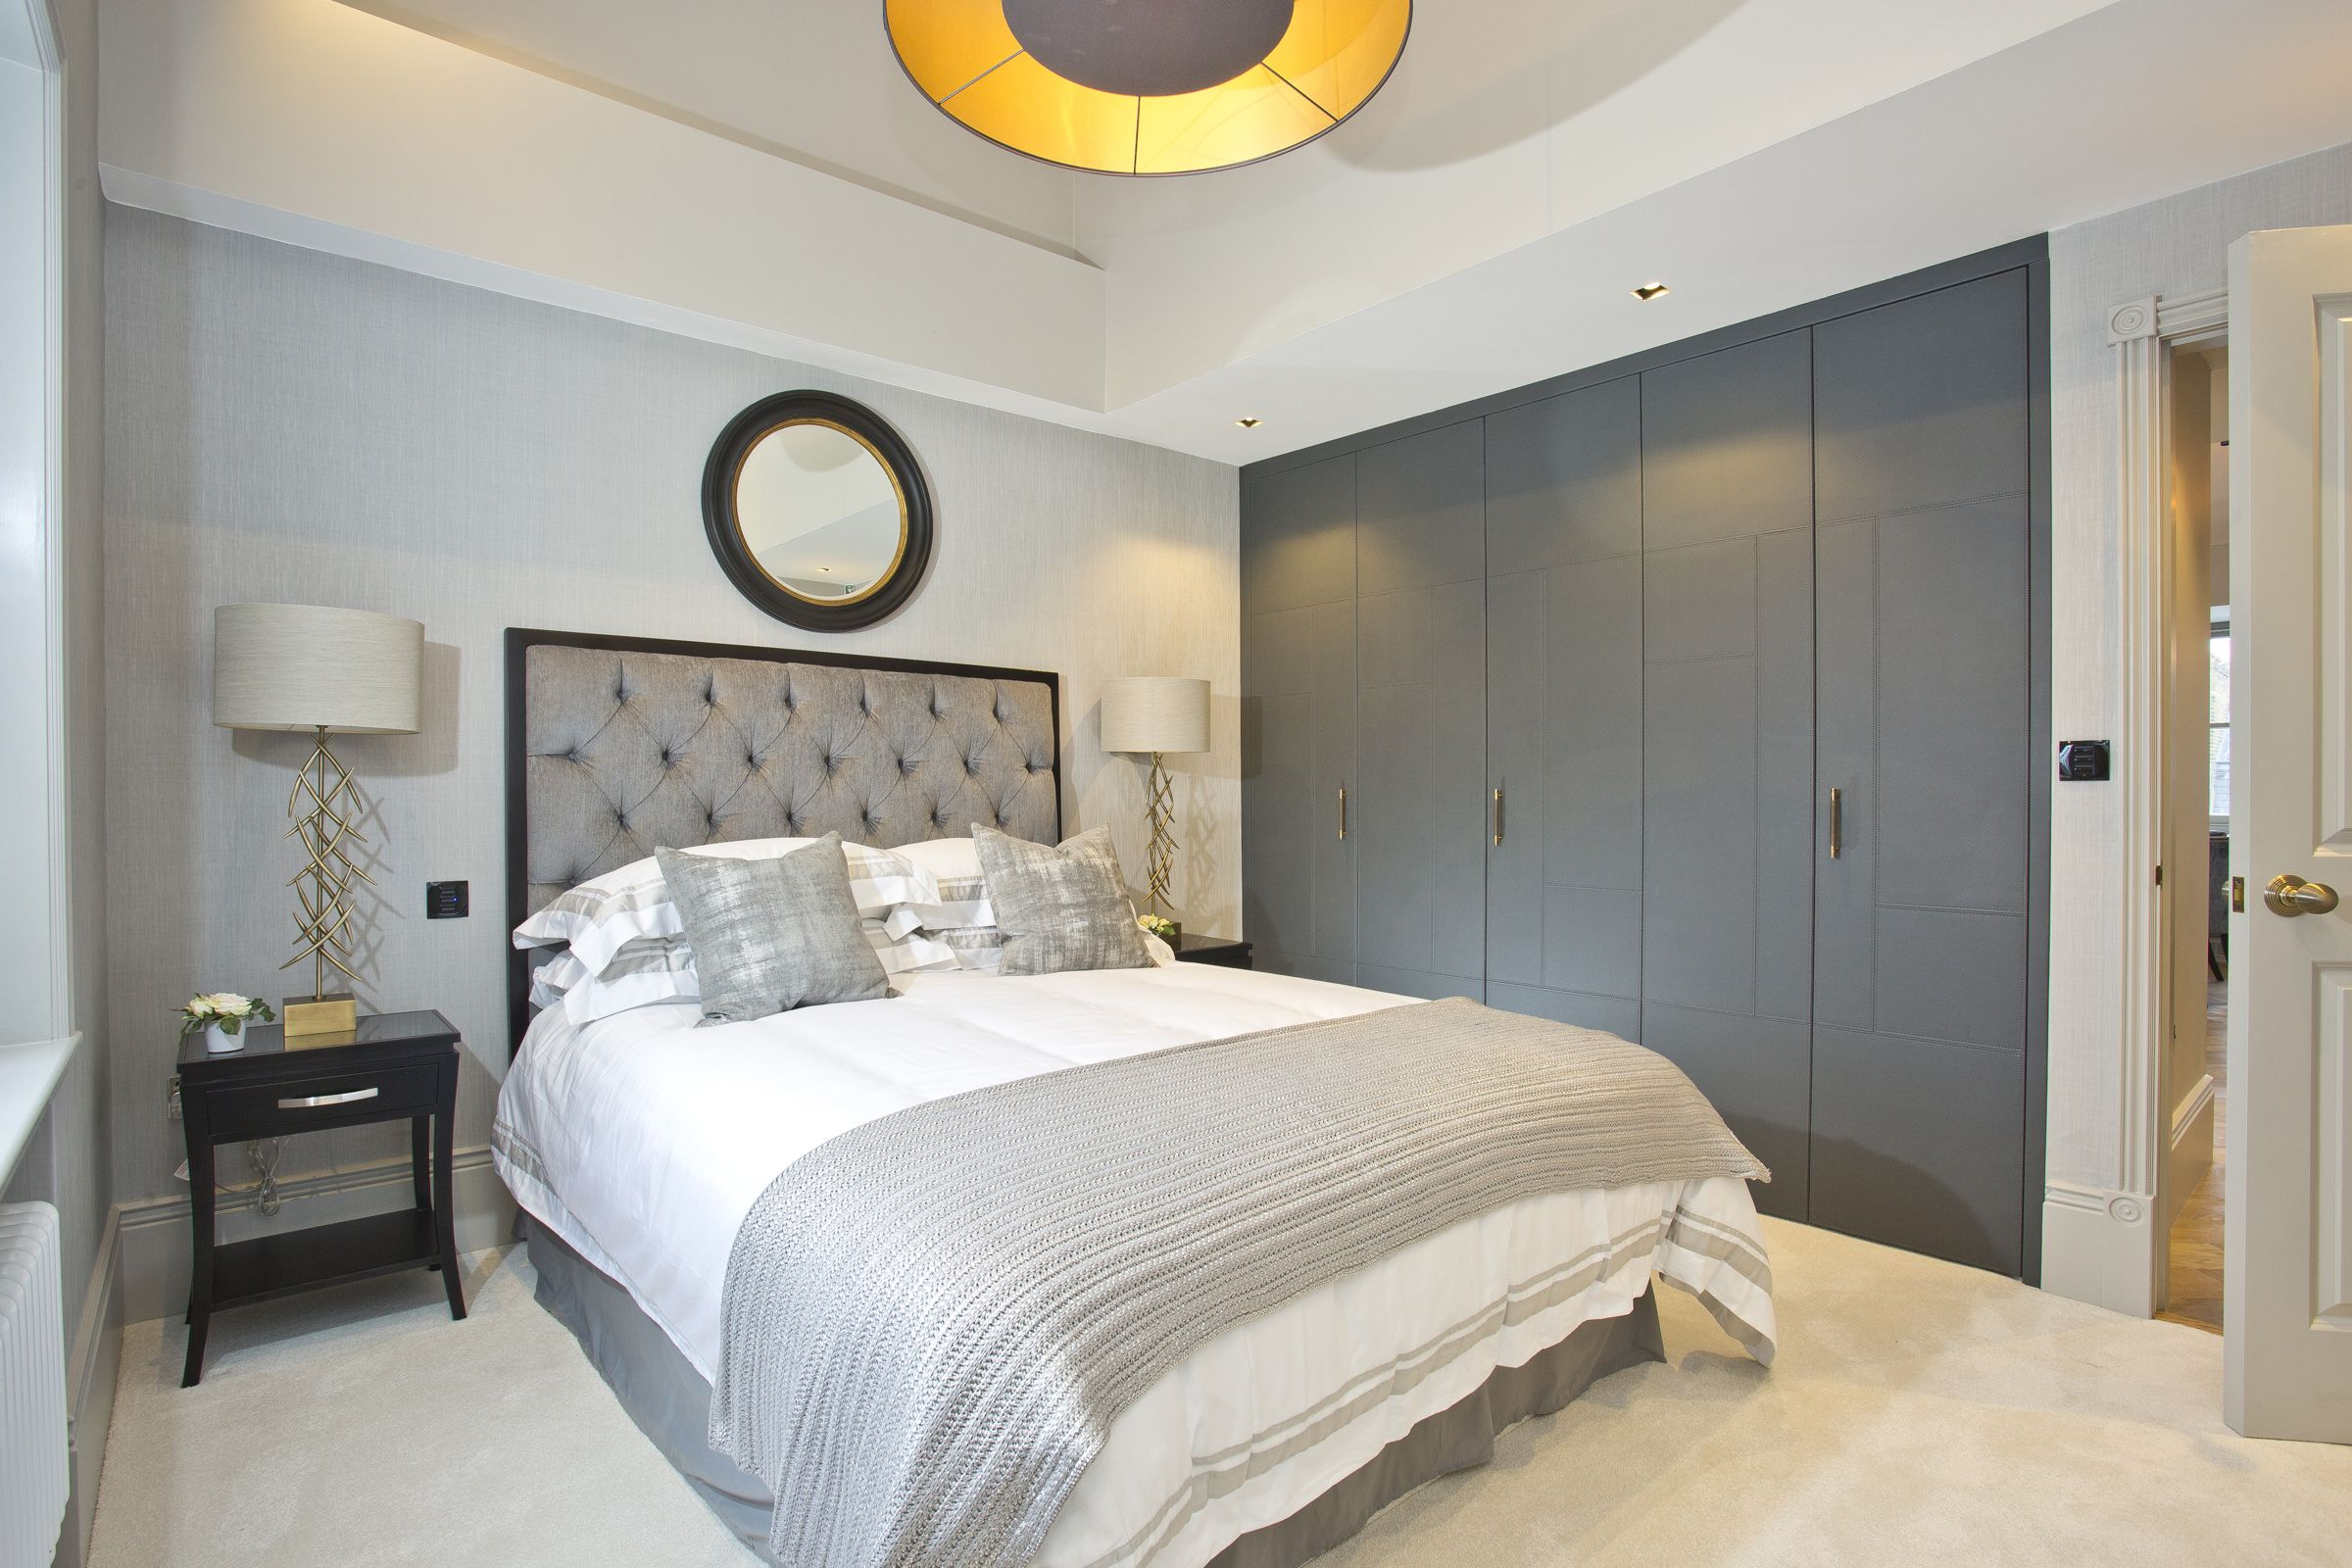 Chelsea Apartments - Master Bedroom by Mood London # ...